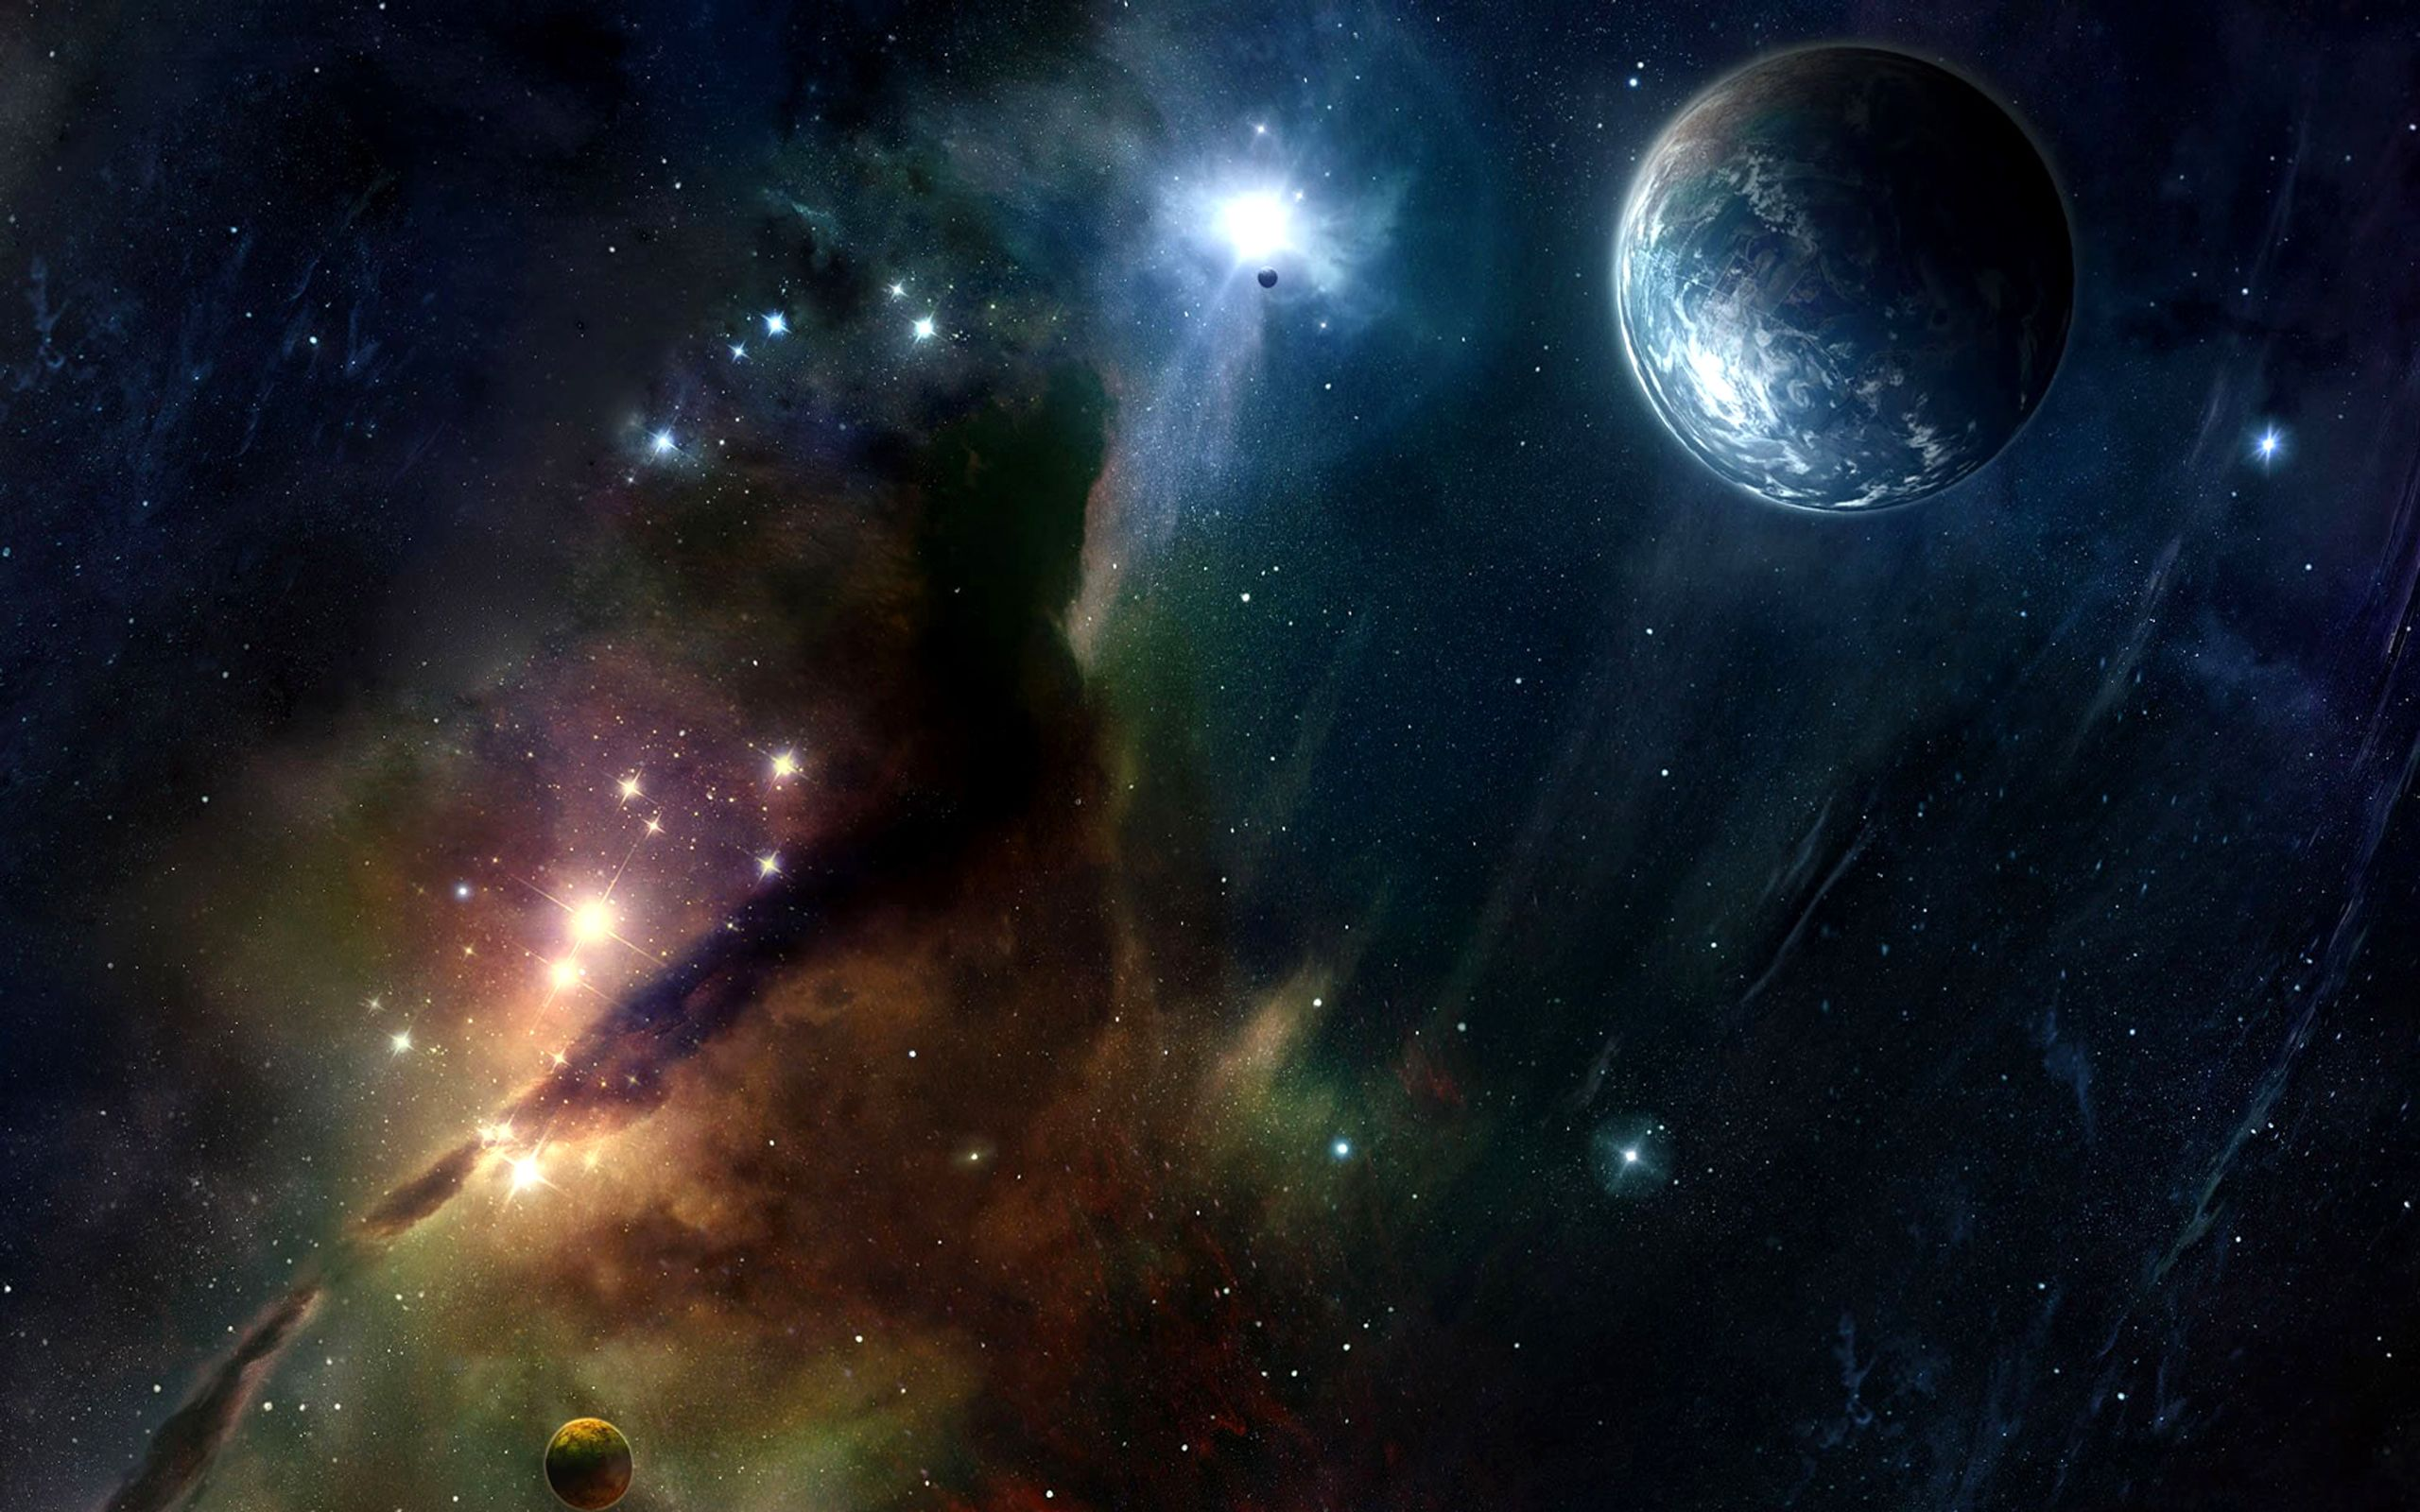 Abstract Space Wallpaper Wide XlY